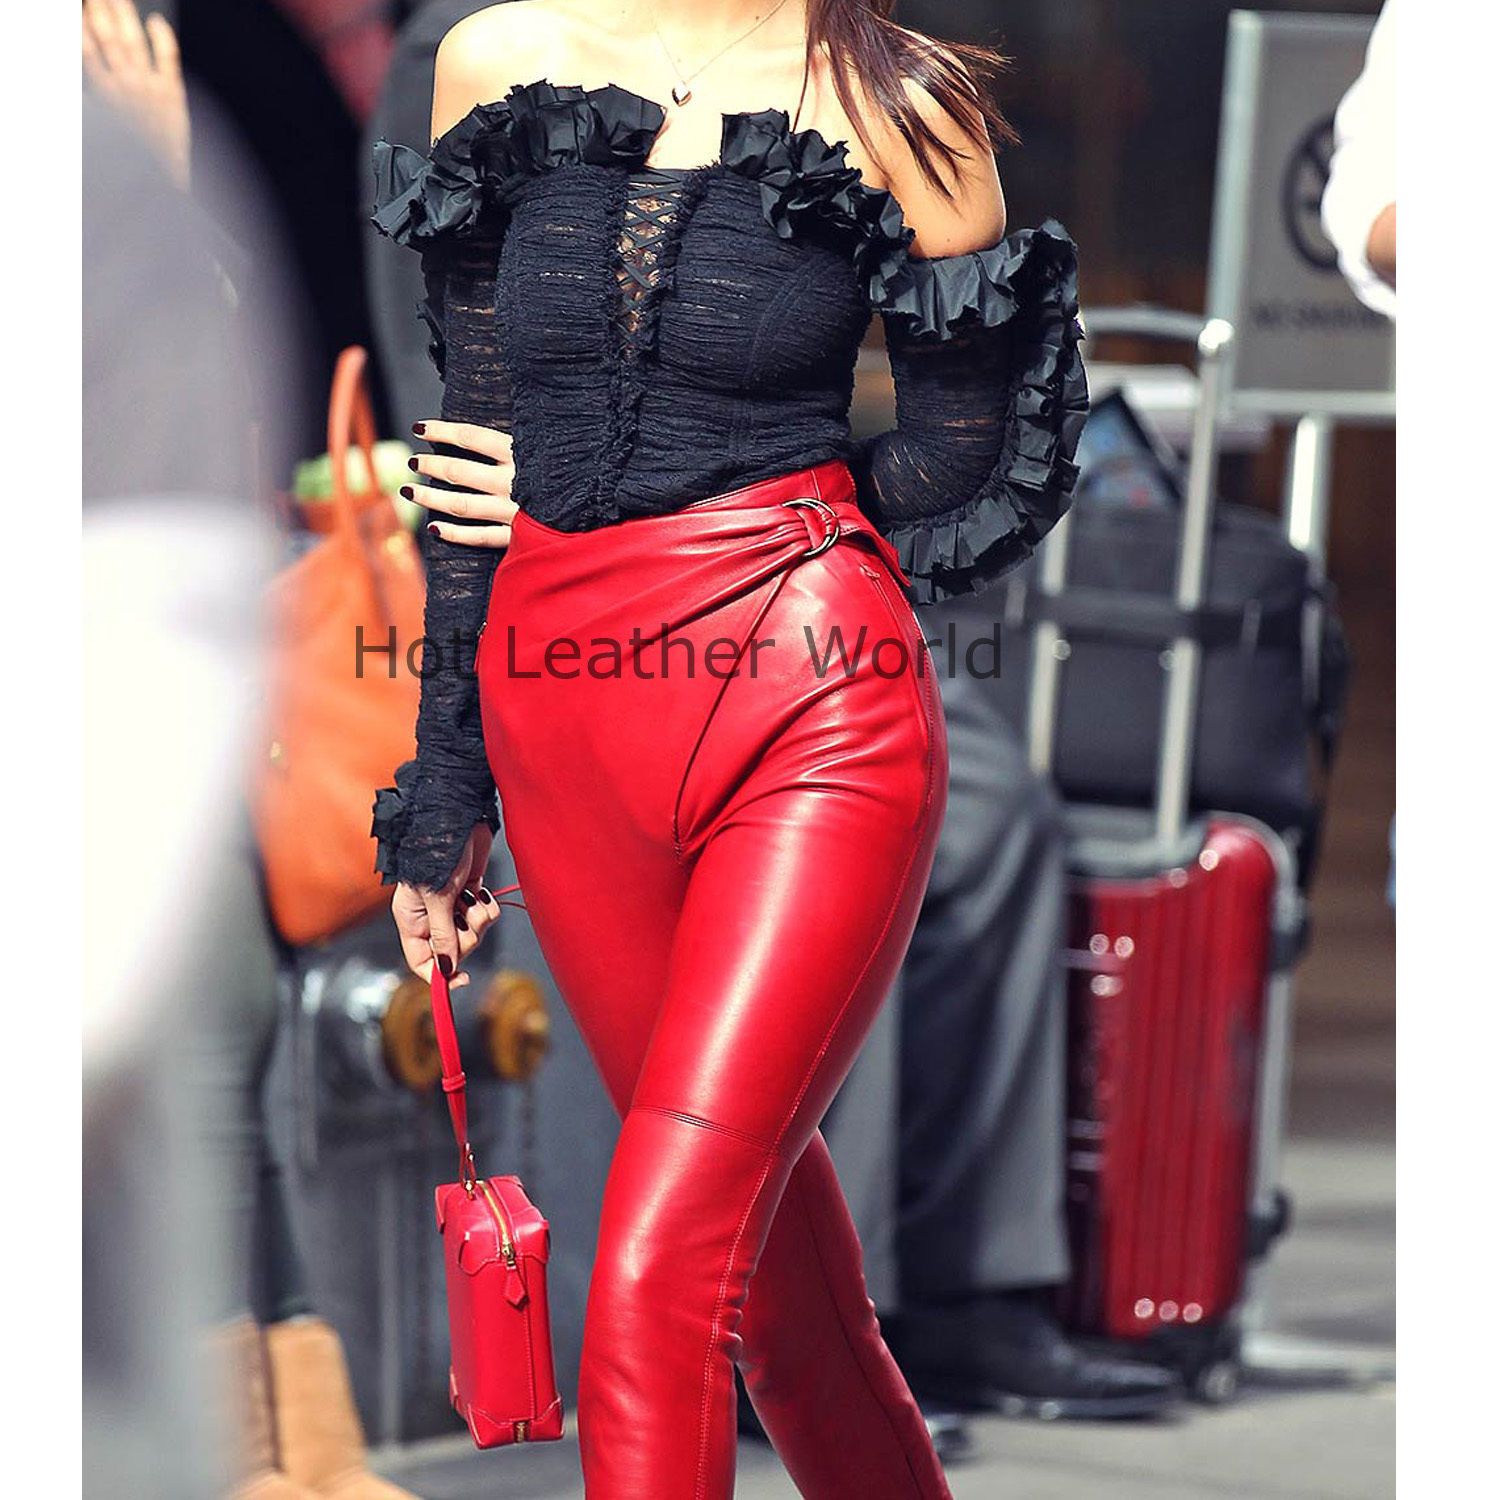 HotLeatherWorld Women Sexy Trendy Women Leather Pant Leather Capri Trouser P20